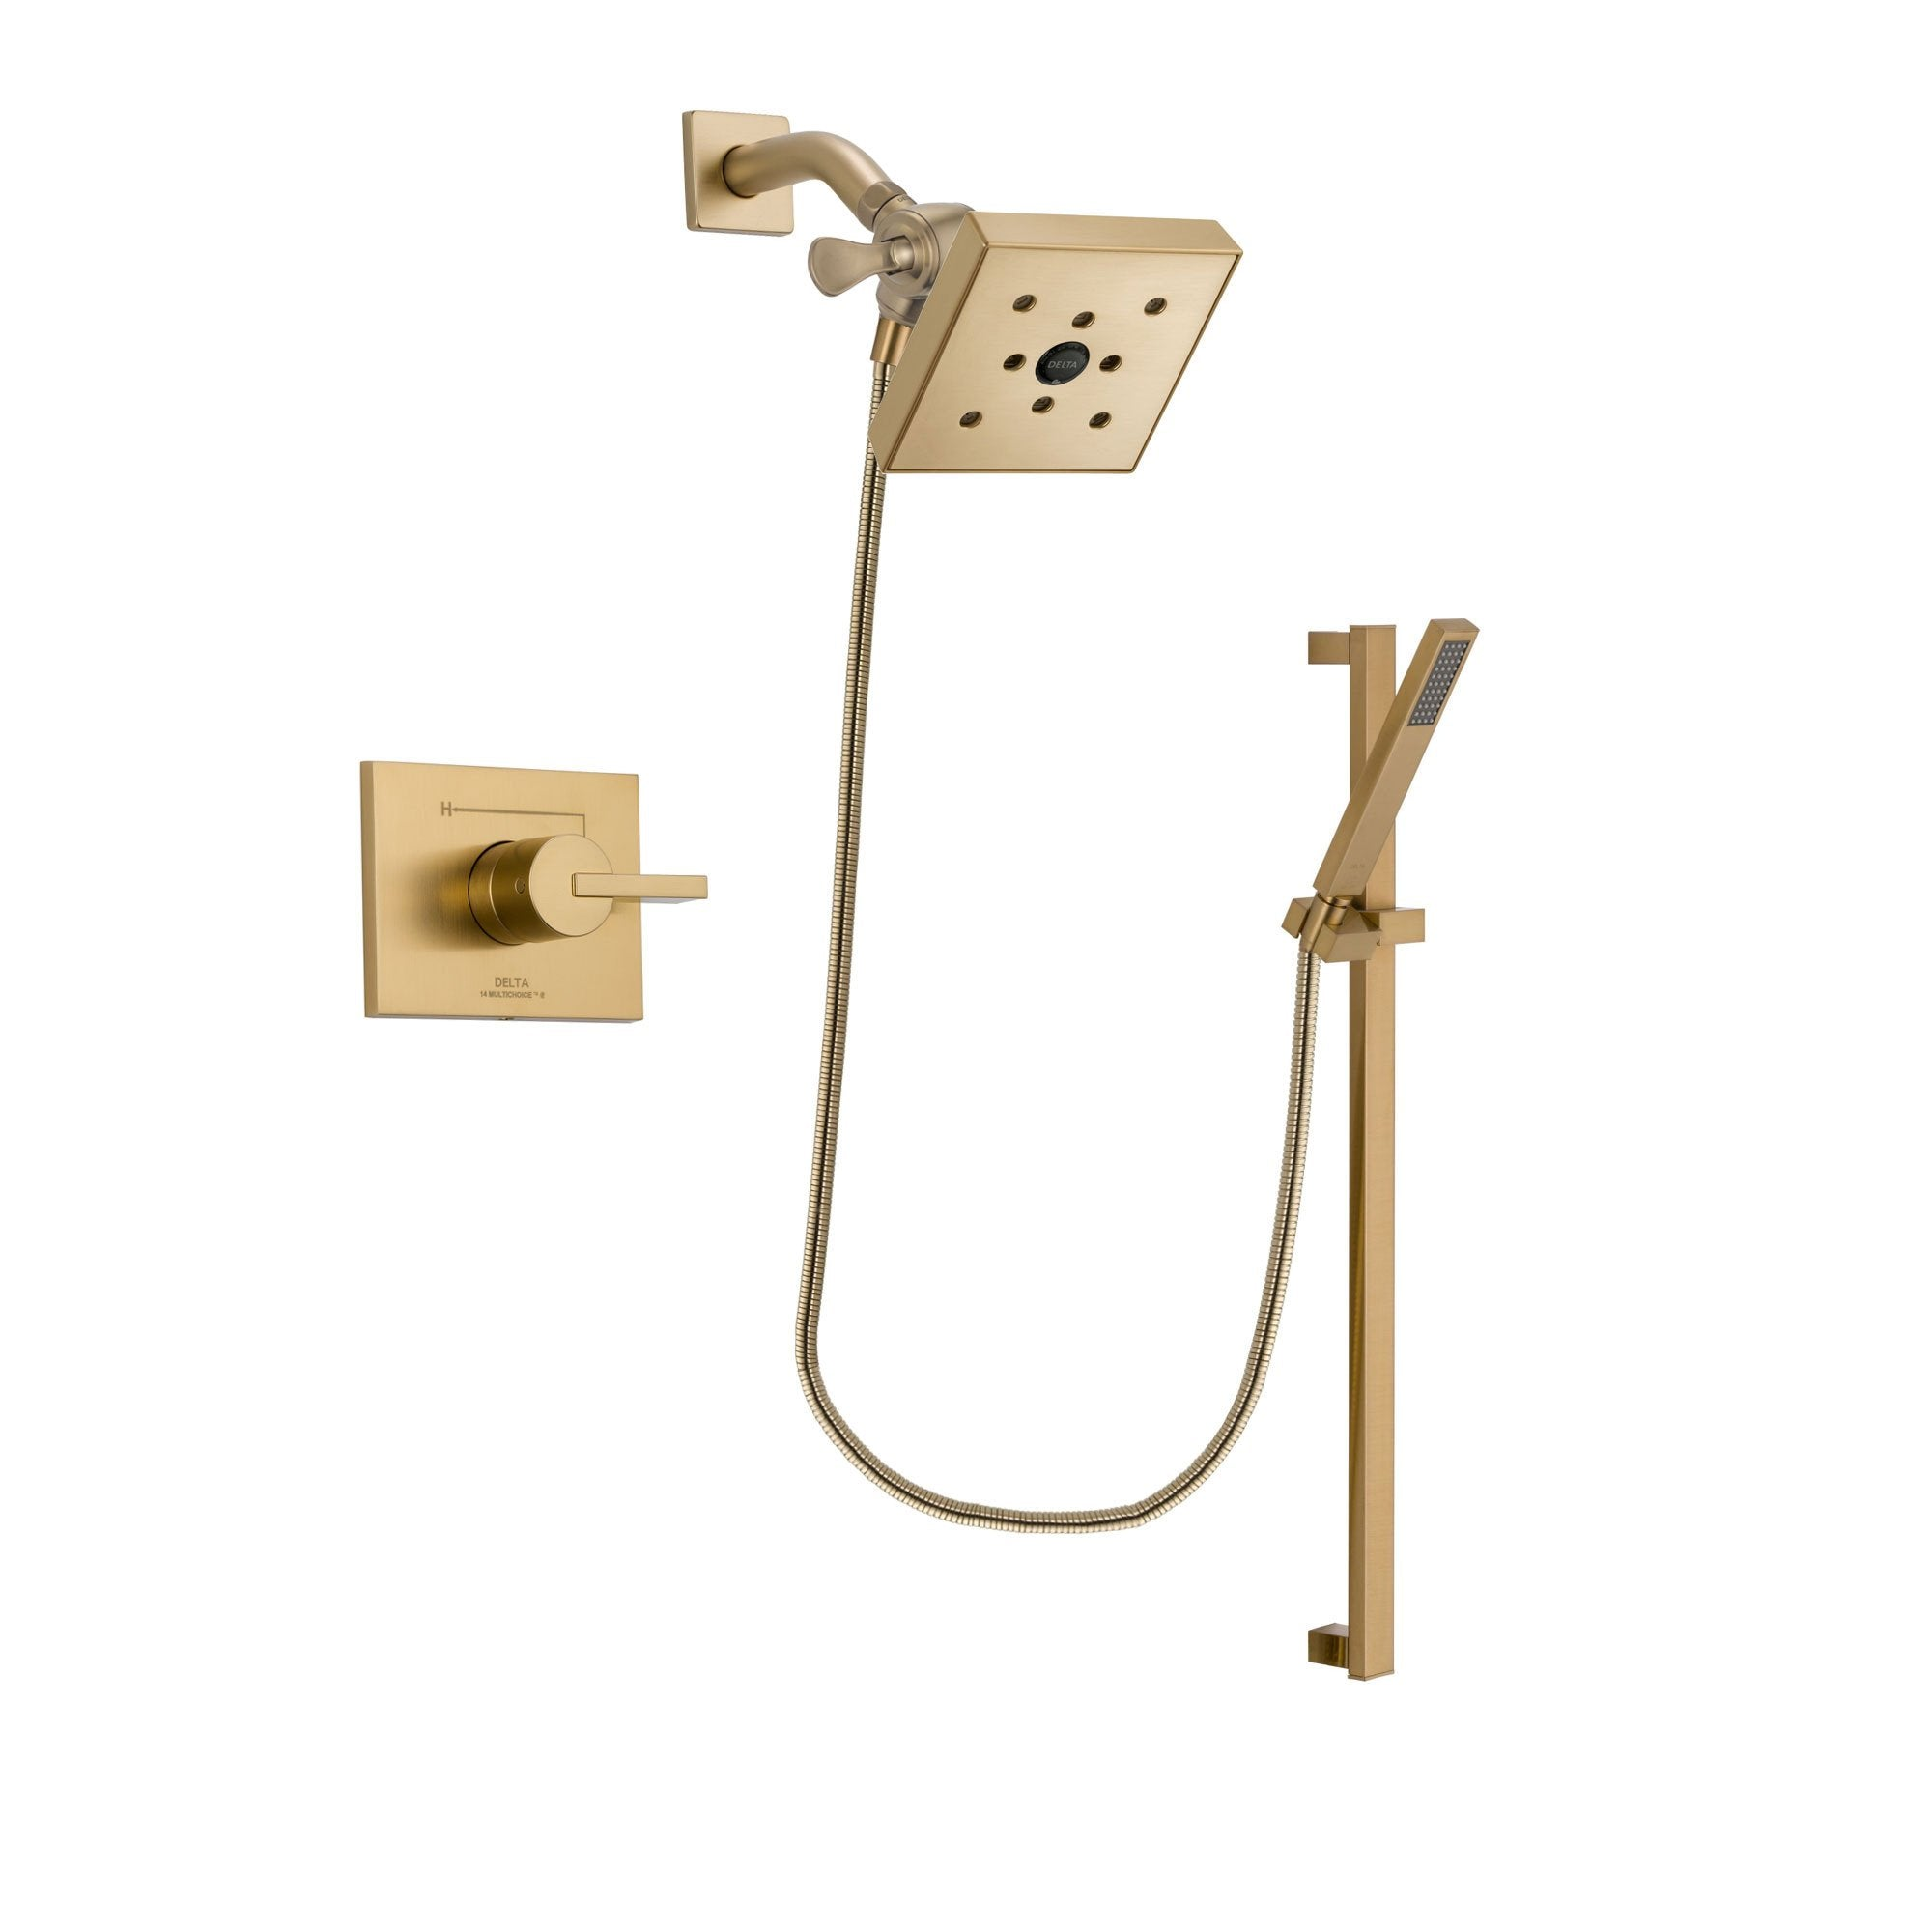 Delta Vero Champagne Bronze Shower Faucet System with Hand Shower DSP4012V